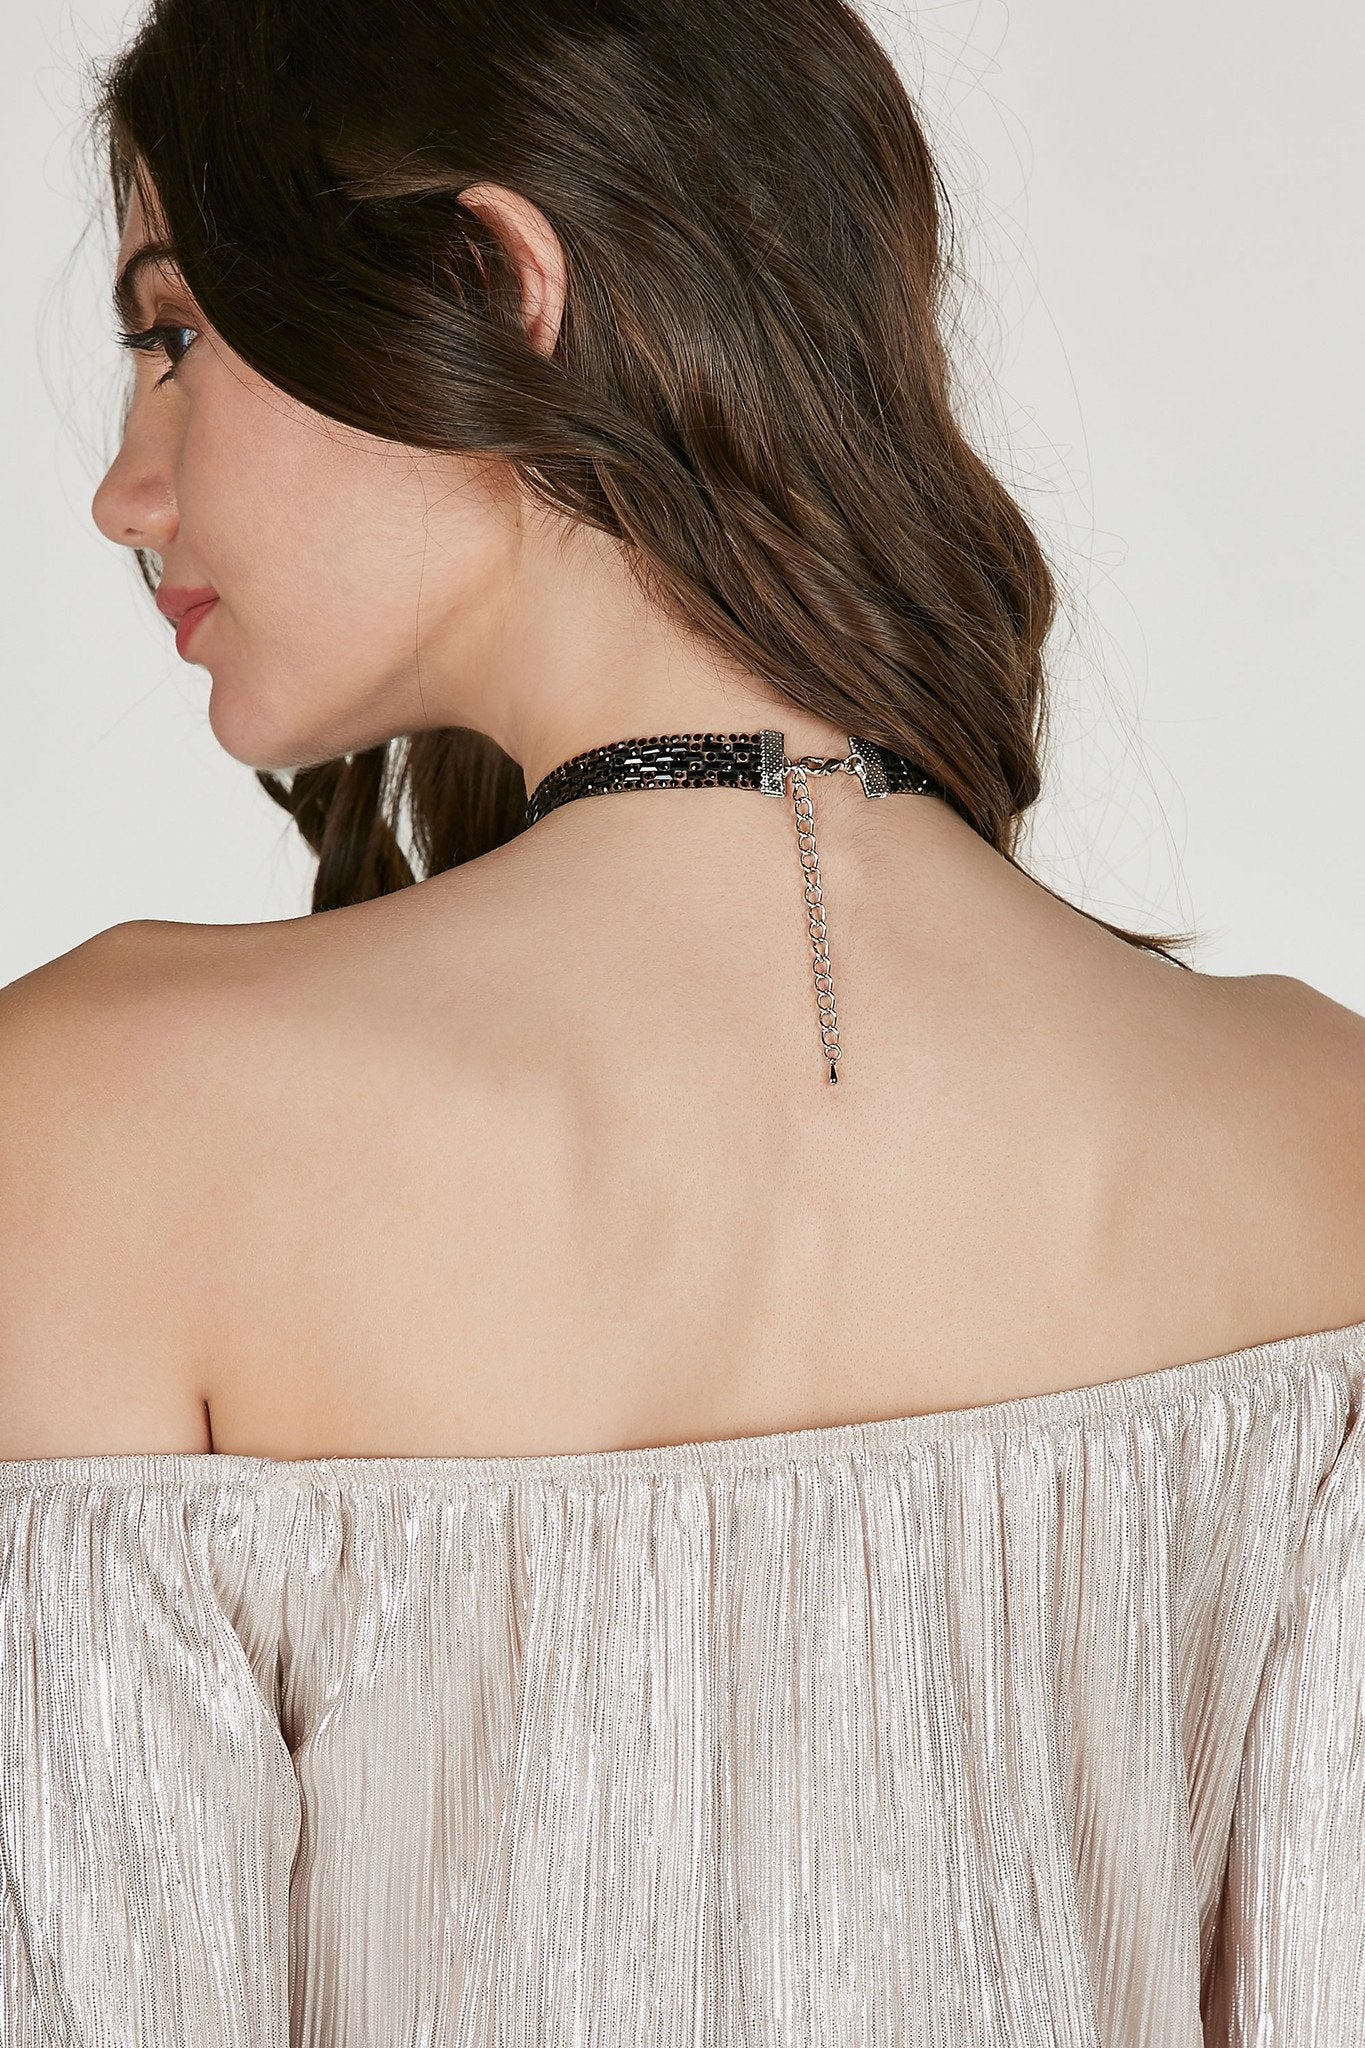 Single band choker with faux gem studs throughout. Lobster clasp for fit and closure.